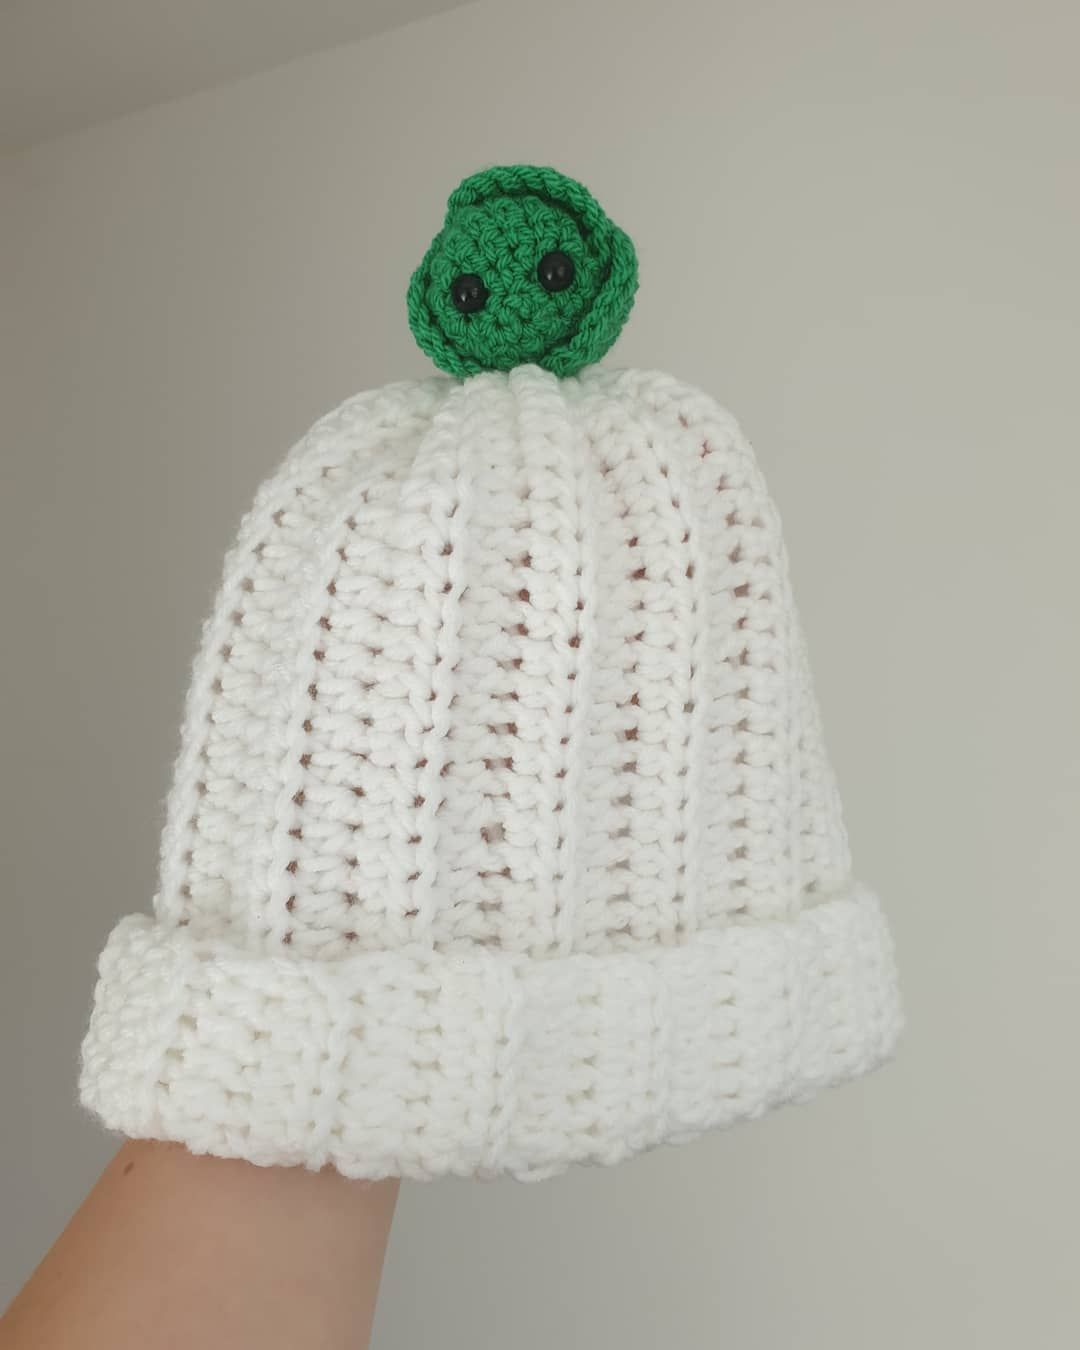 Who else is feeling the Christmas Spirit?? Introducing The Sprout-tacular Hat I have been trying to find time to make this all week and I am super chuffed! How cute is the lil sprout?? This is an Adults S/M Hat and a Child's L. Available now on my Etsy!! #christmashat#handmade#crochet#crochetofinstagram#crochetchristmas#crocheteveryday#crochetaddict#brusselsprouts#independentbusiness#shopsmall#crafts#smallbusiness#smallbusinesschristmas#etsymakes#etsysales#etsyuk#etsyukseller#etsyofinstagram#ets